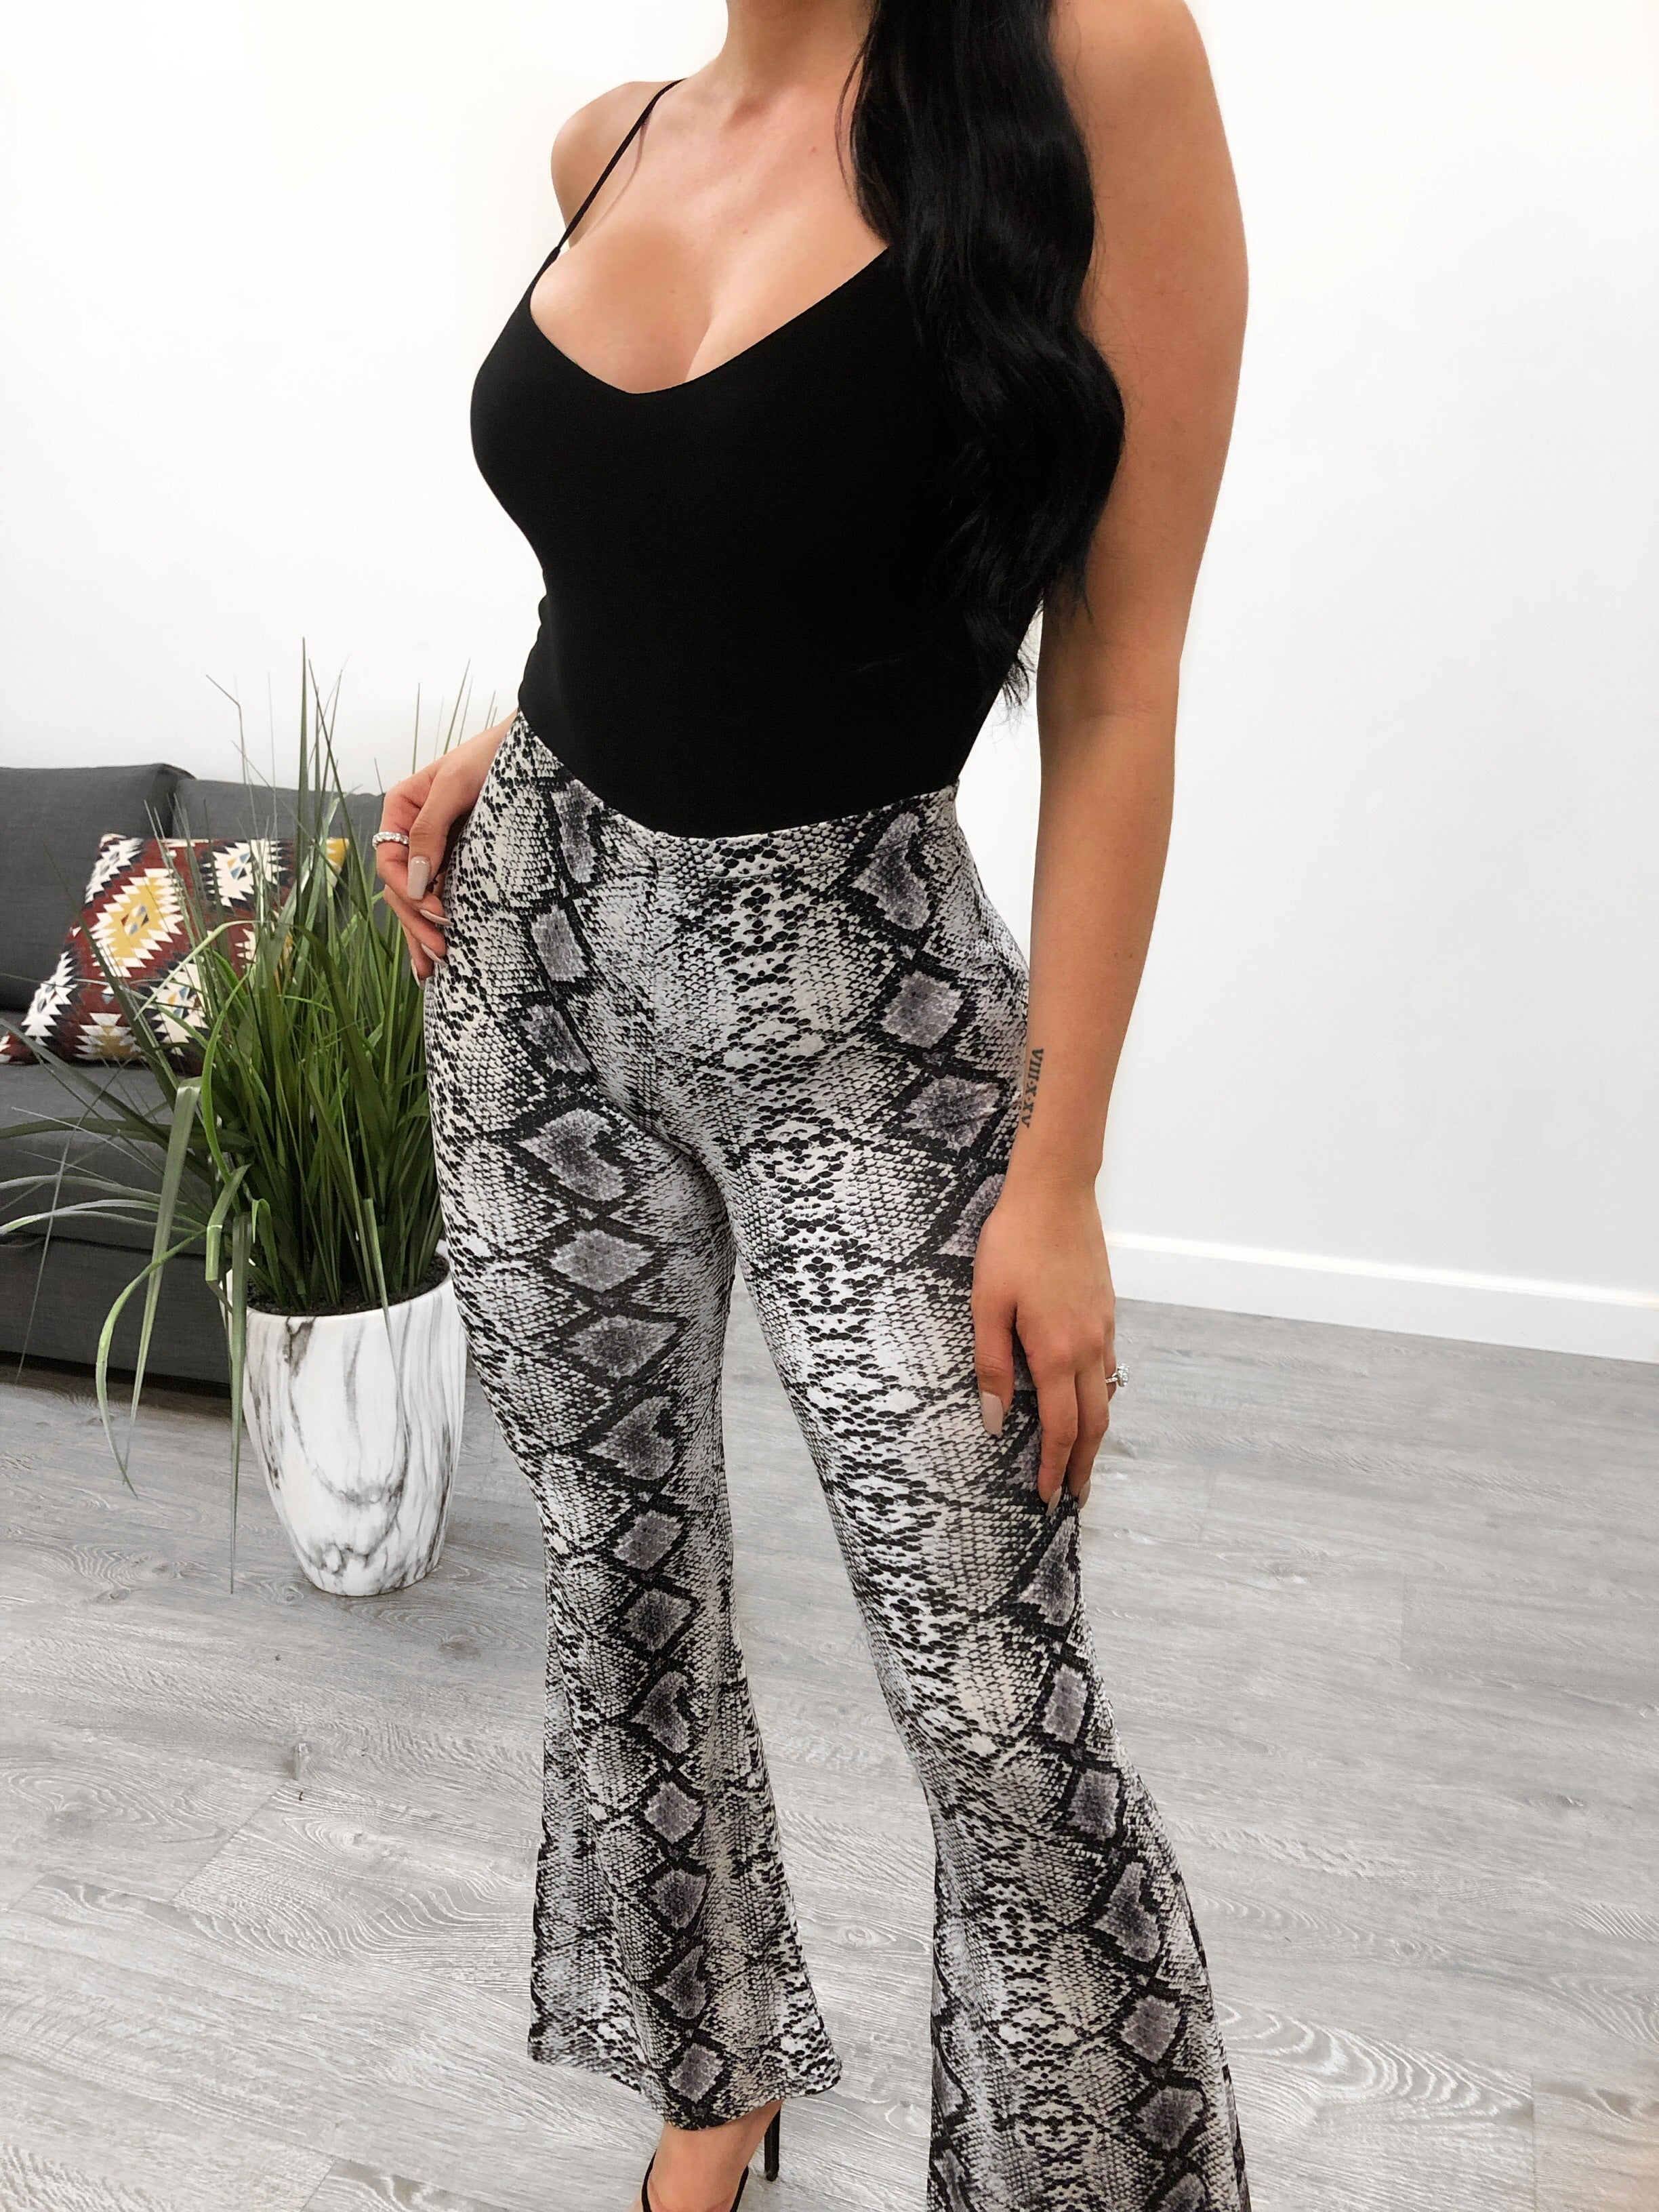 Bell bottoms in a primarily neutral color with black snake pattern.